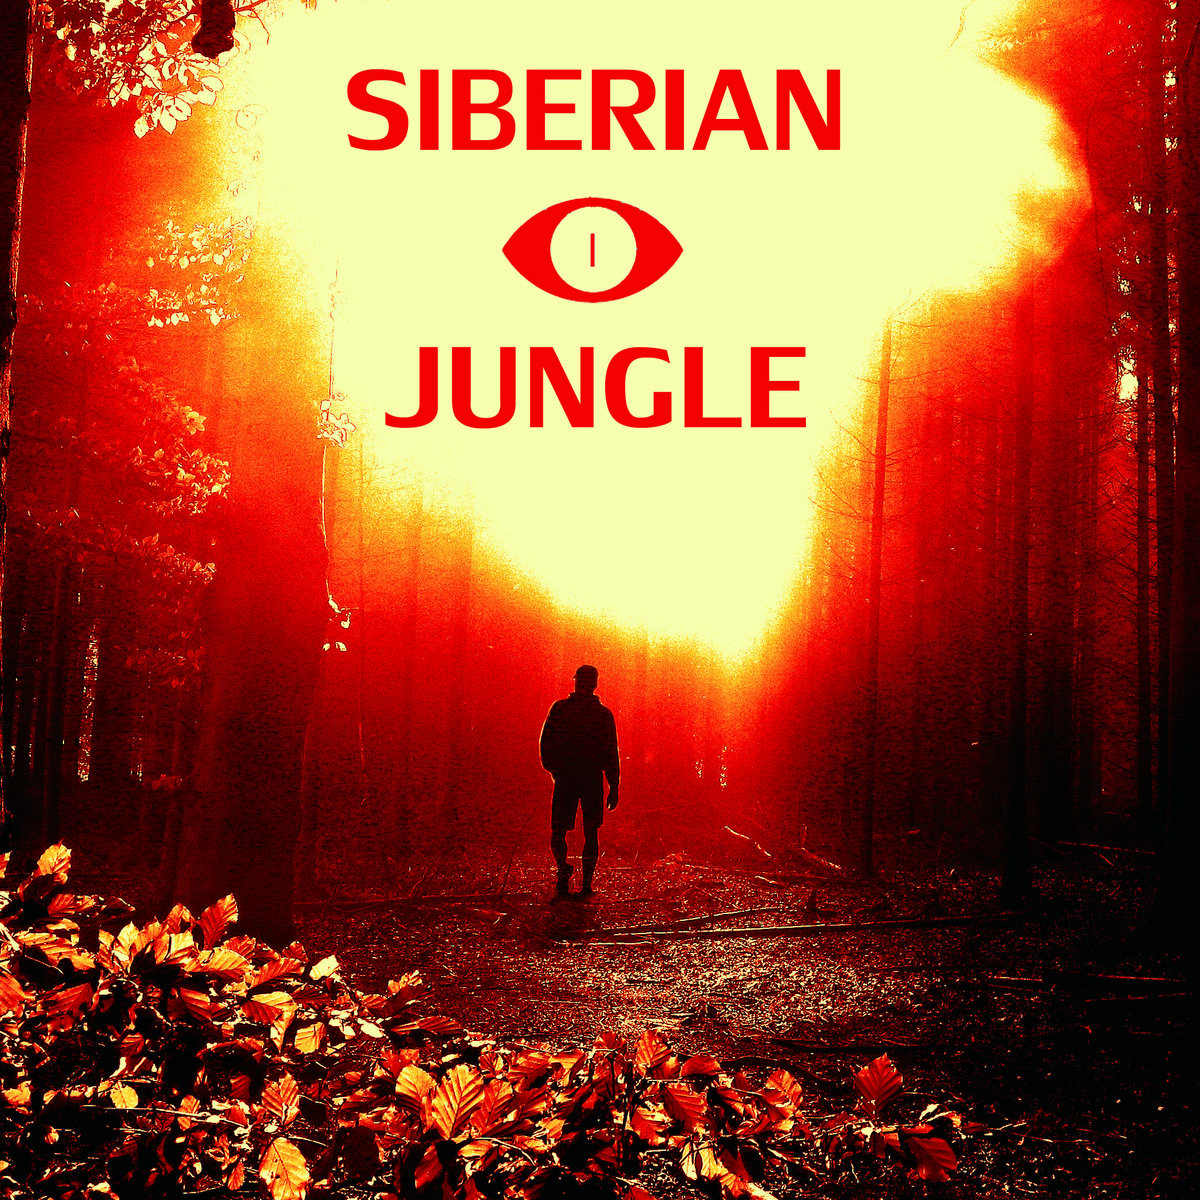 Paralyzah - Big Wonderful Thing @ 'Siberian Jungle - Volume 1' album (atmospheric drum'n'bass, electronic)